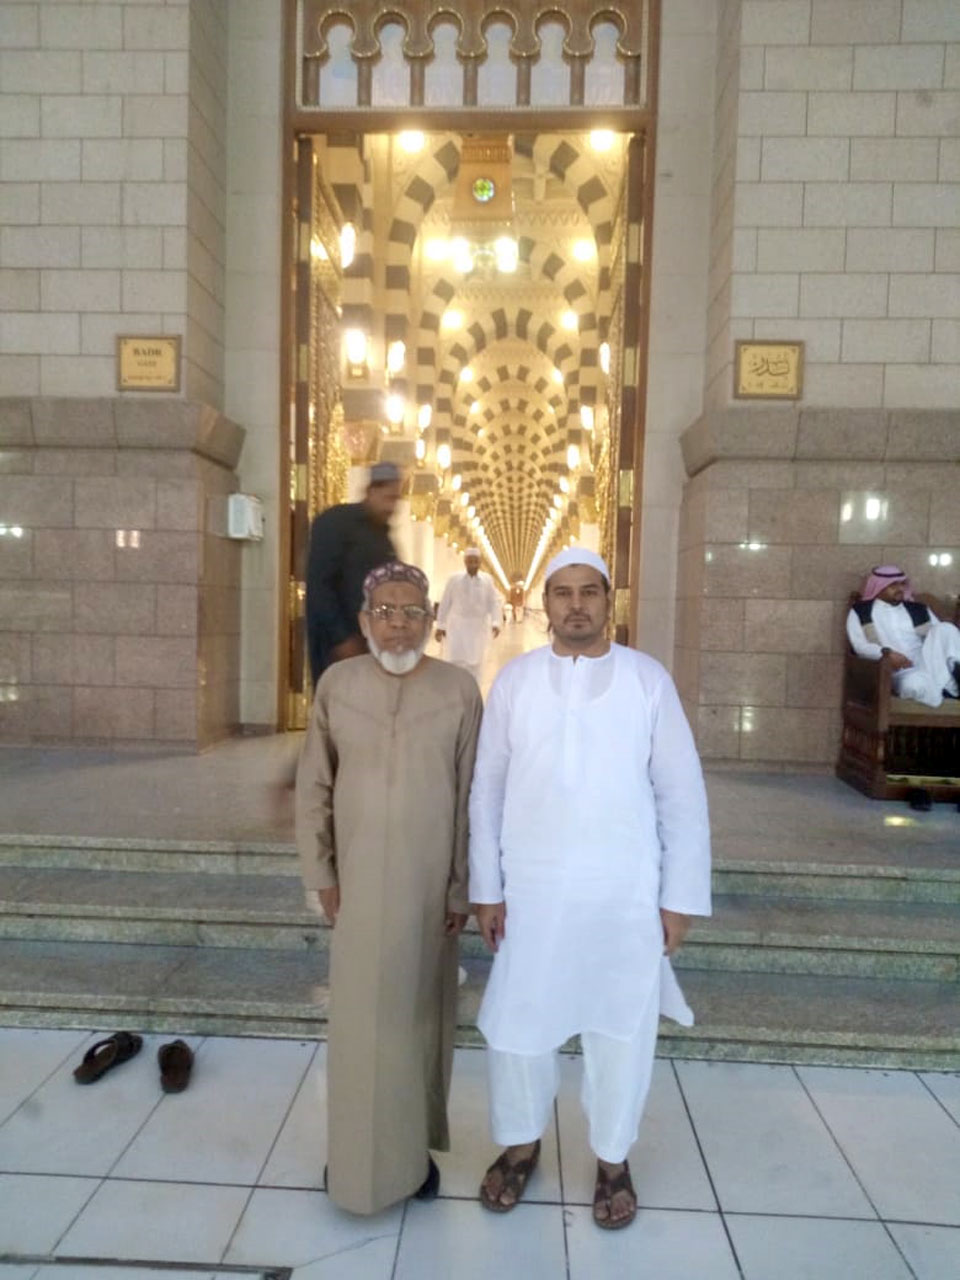 Engr. Iqbal Ahmed Khan and Kamran A. Khan in front of the entry gate of Masjid-e-Nabwi